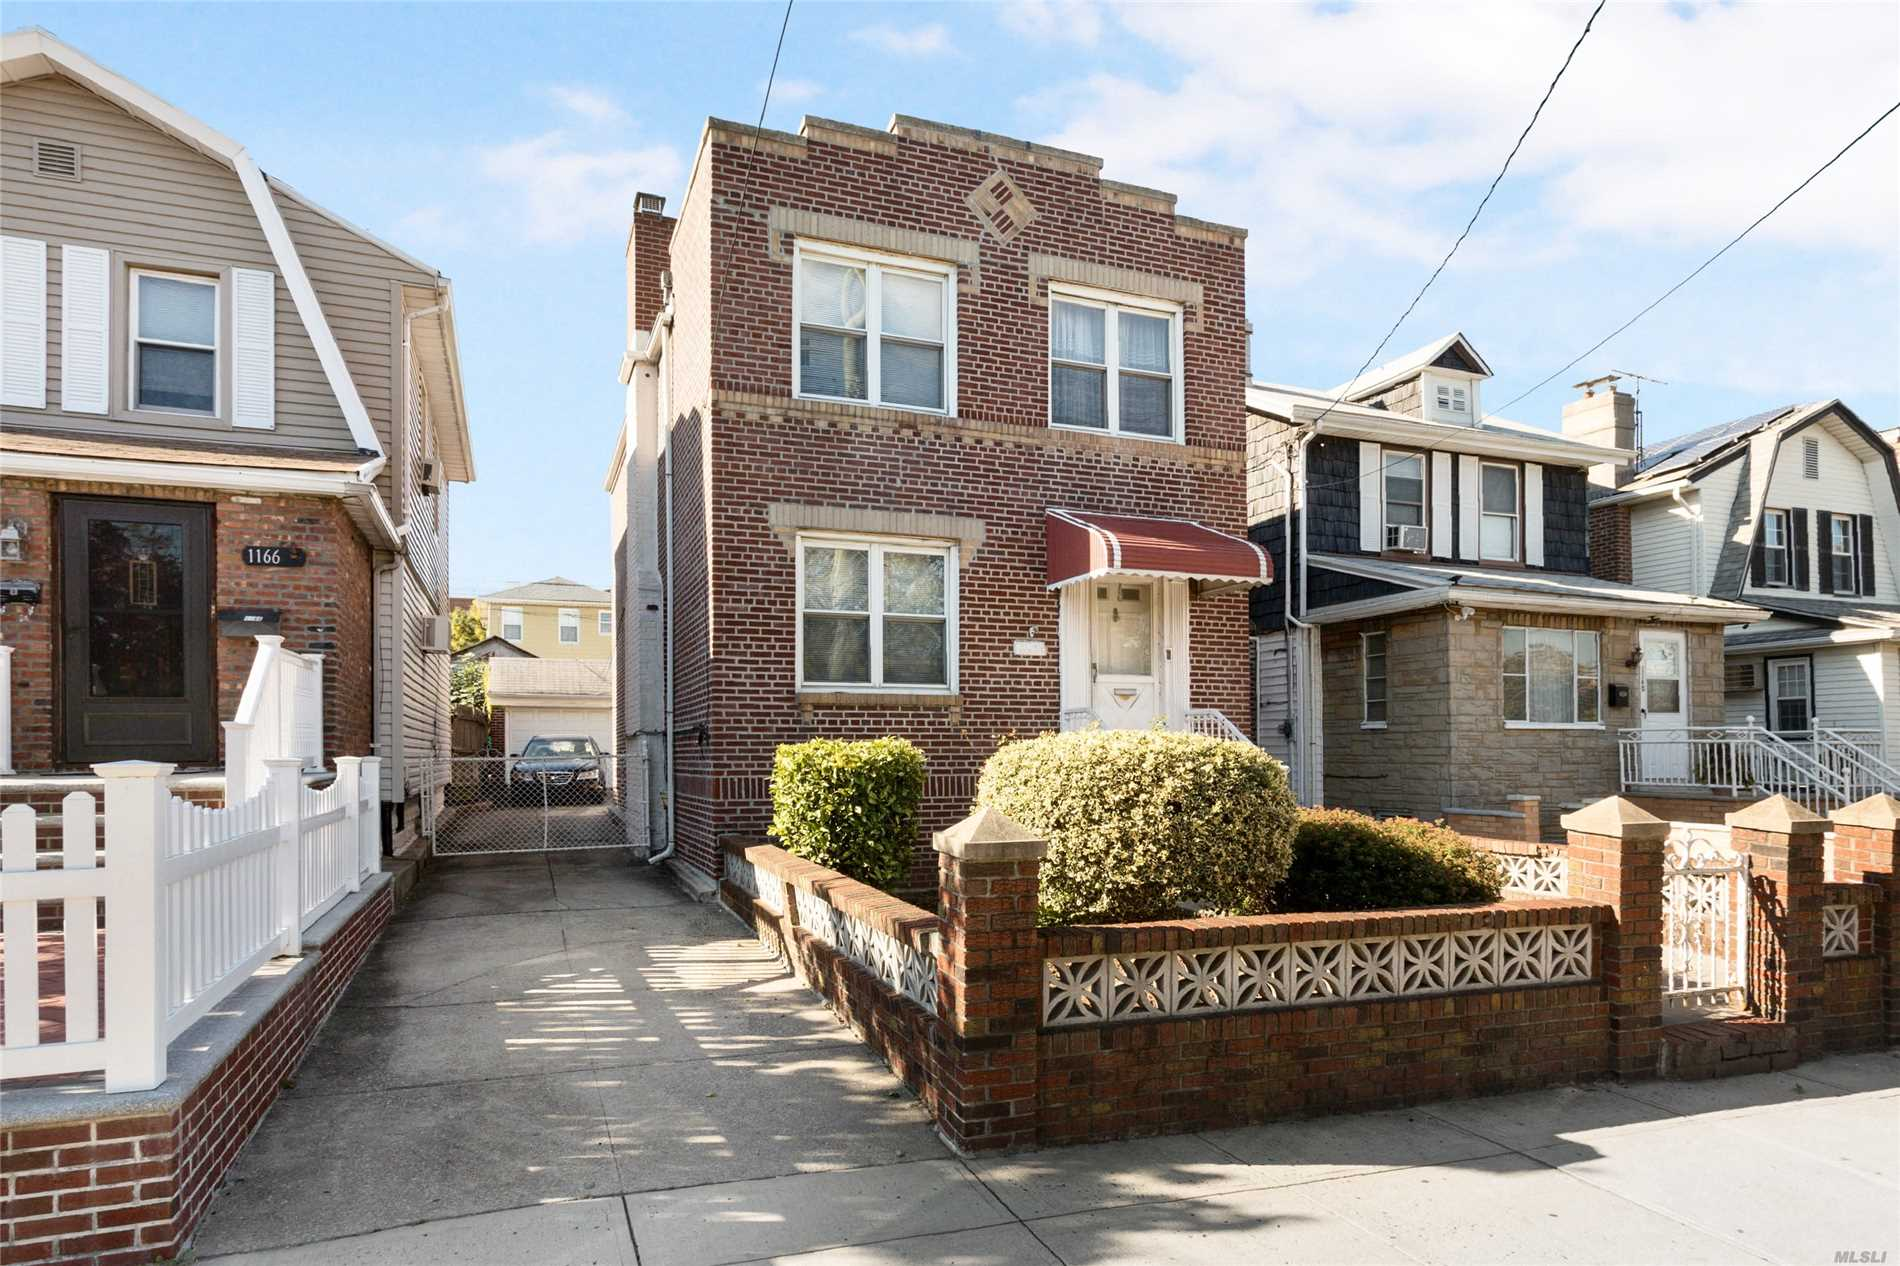 Two family detached brick house on 62nd St in Borough Park, Brooklyn. Certificate of Occupancy indicates two family house. Four rooms over four rooms, two and half baths, full finished basement, gas heat and hot water, two care garage and private driveway. Near public transportation. Delivered vacant. Lot: 28 x 100, Bldg 18 x 28.5, Zoned R3A.